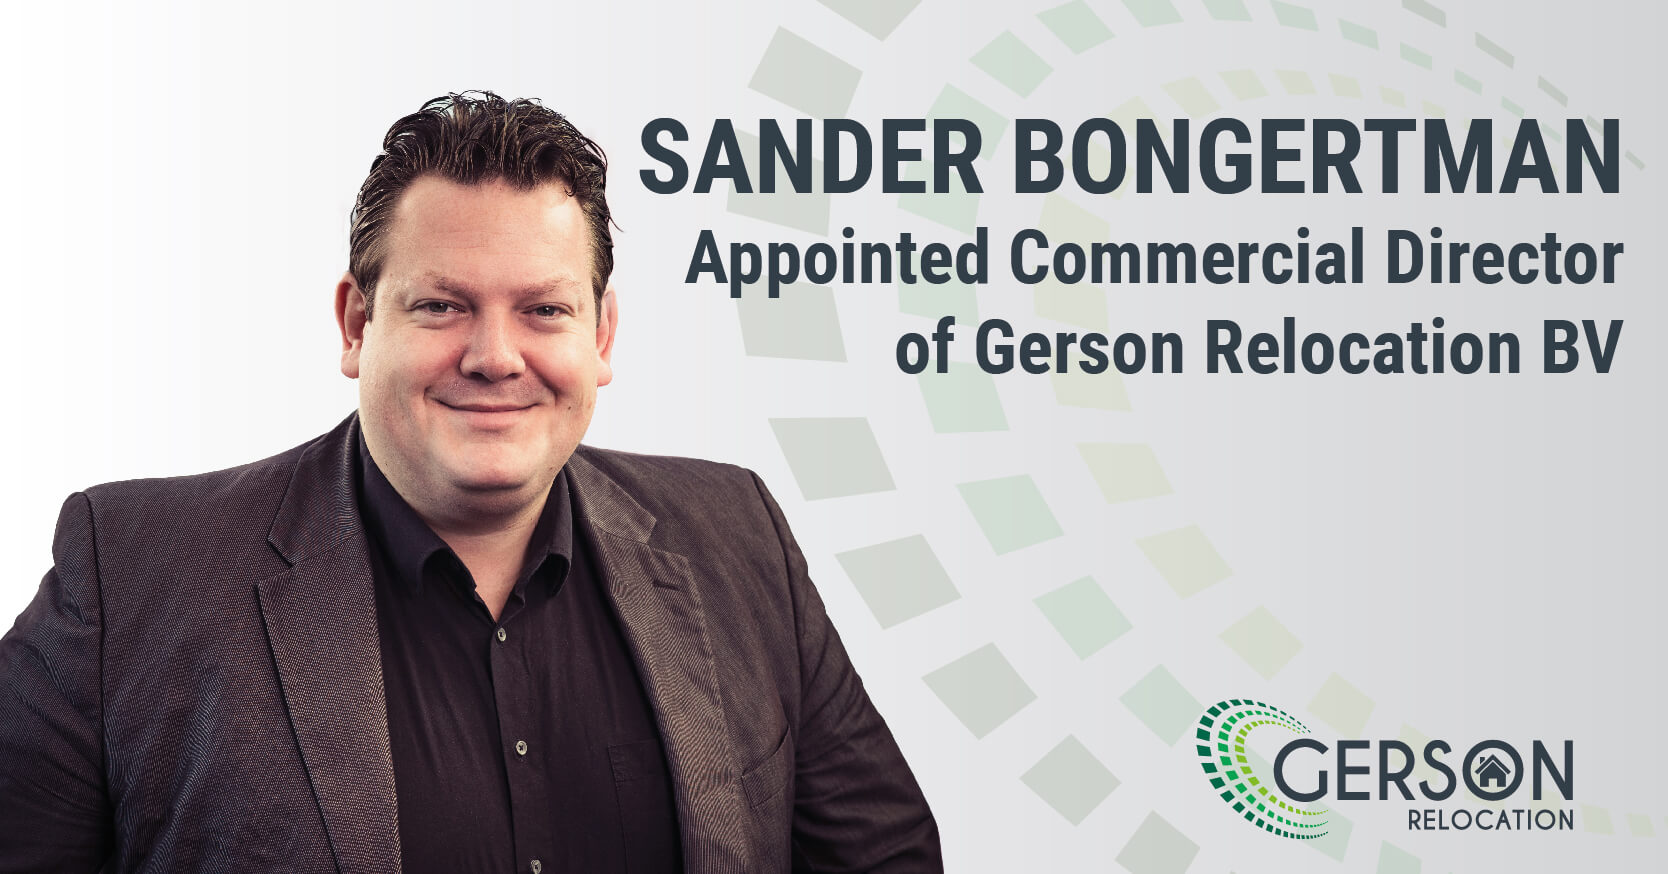 We Are Delighted To Announce That Sander Bongertman Has Been Appointed As Commercial Director Of Gerson Relocation BV.